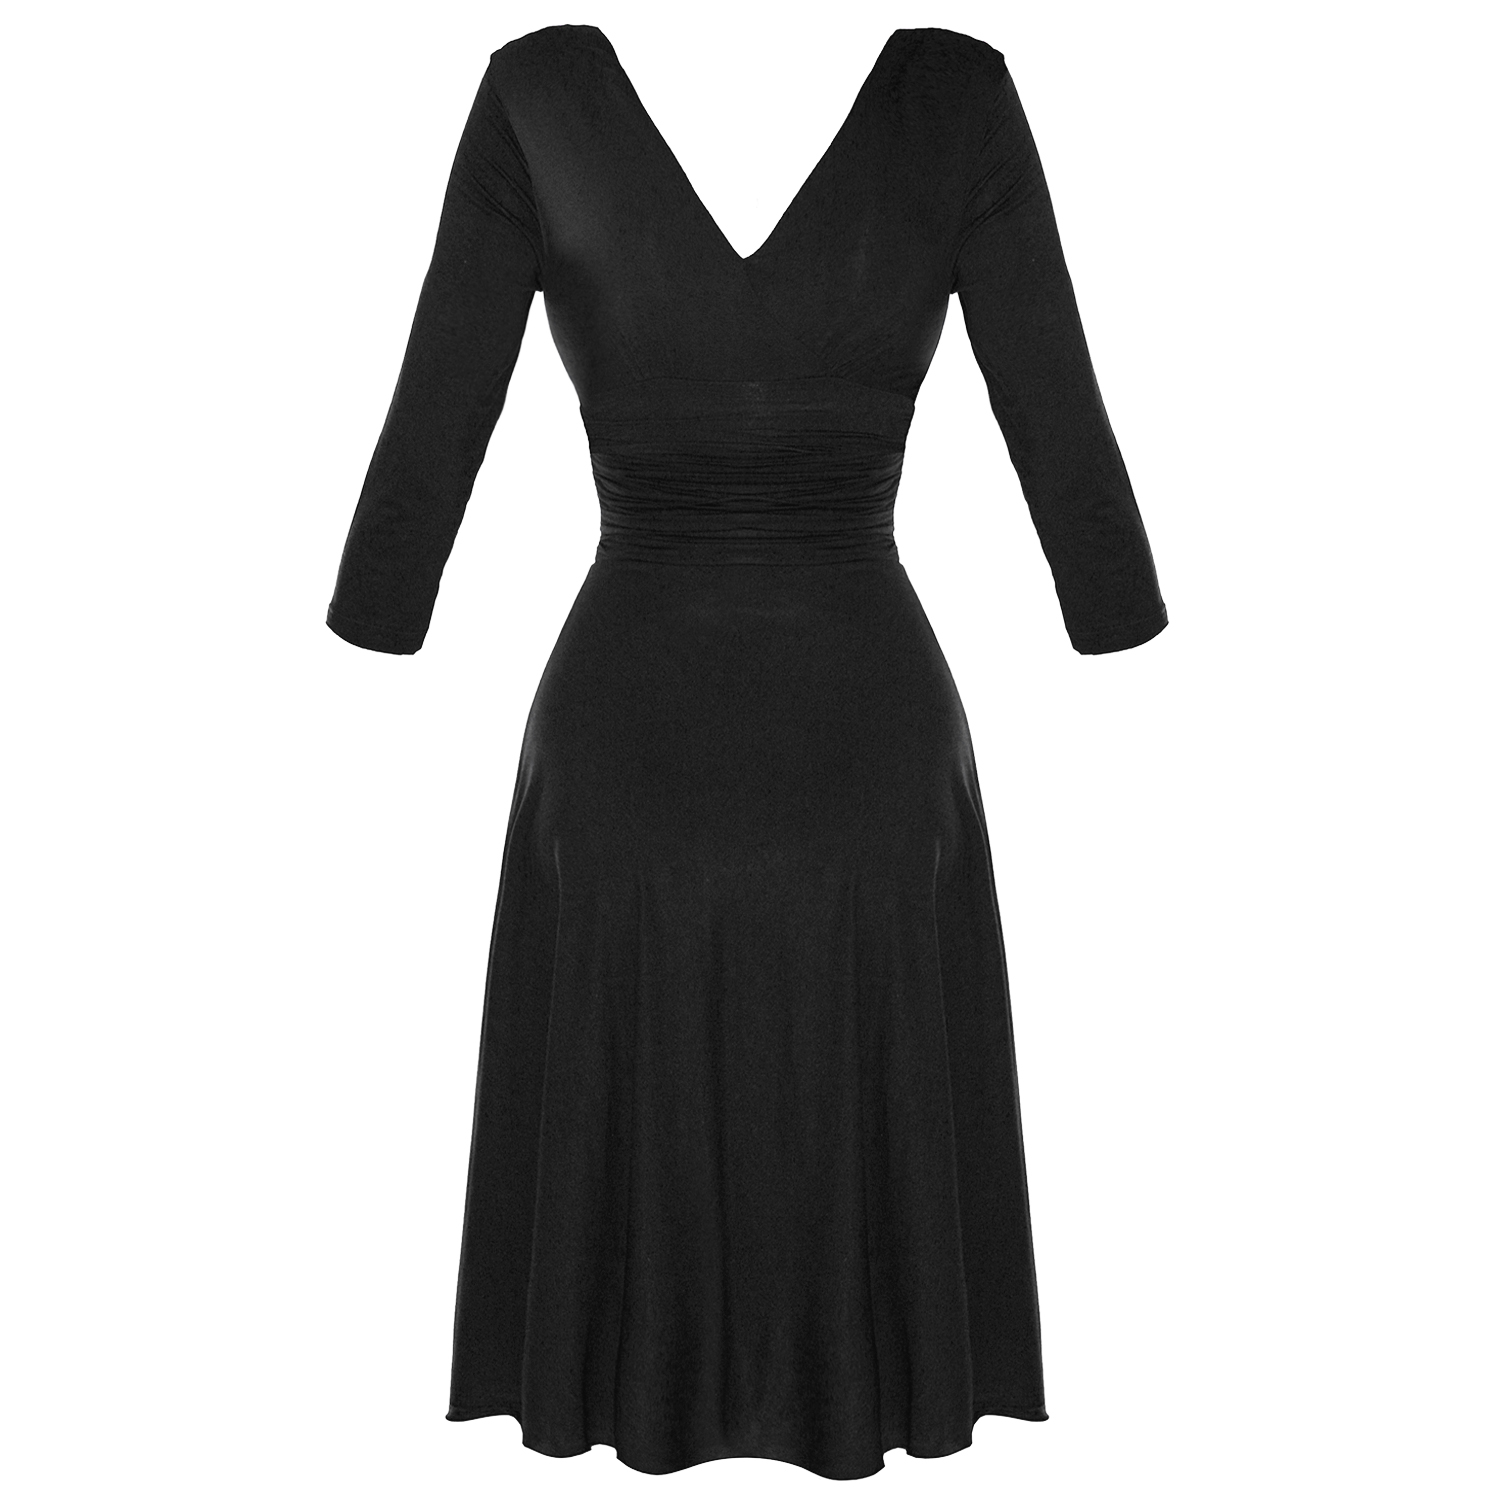 ladies new black long sleeve wrap 50s vintage style career evening party dress. Black Bedroom Furniture Sets. Home Design Ideas